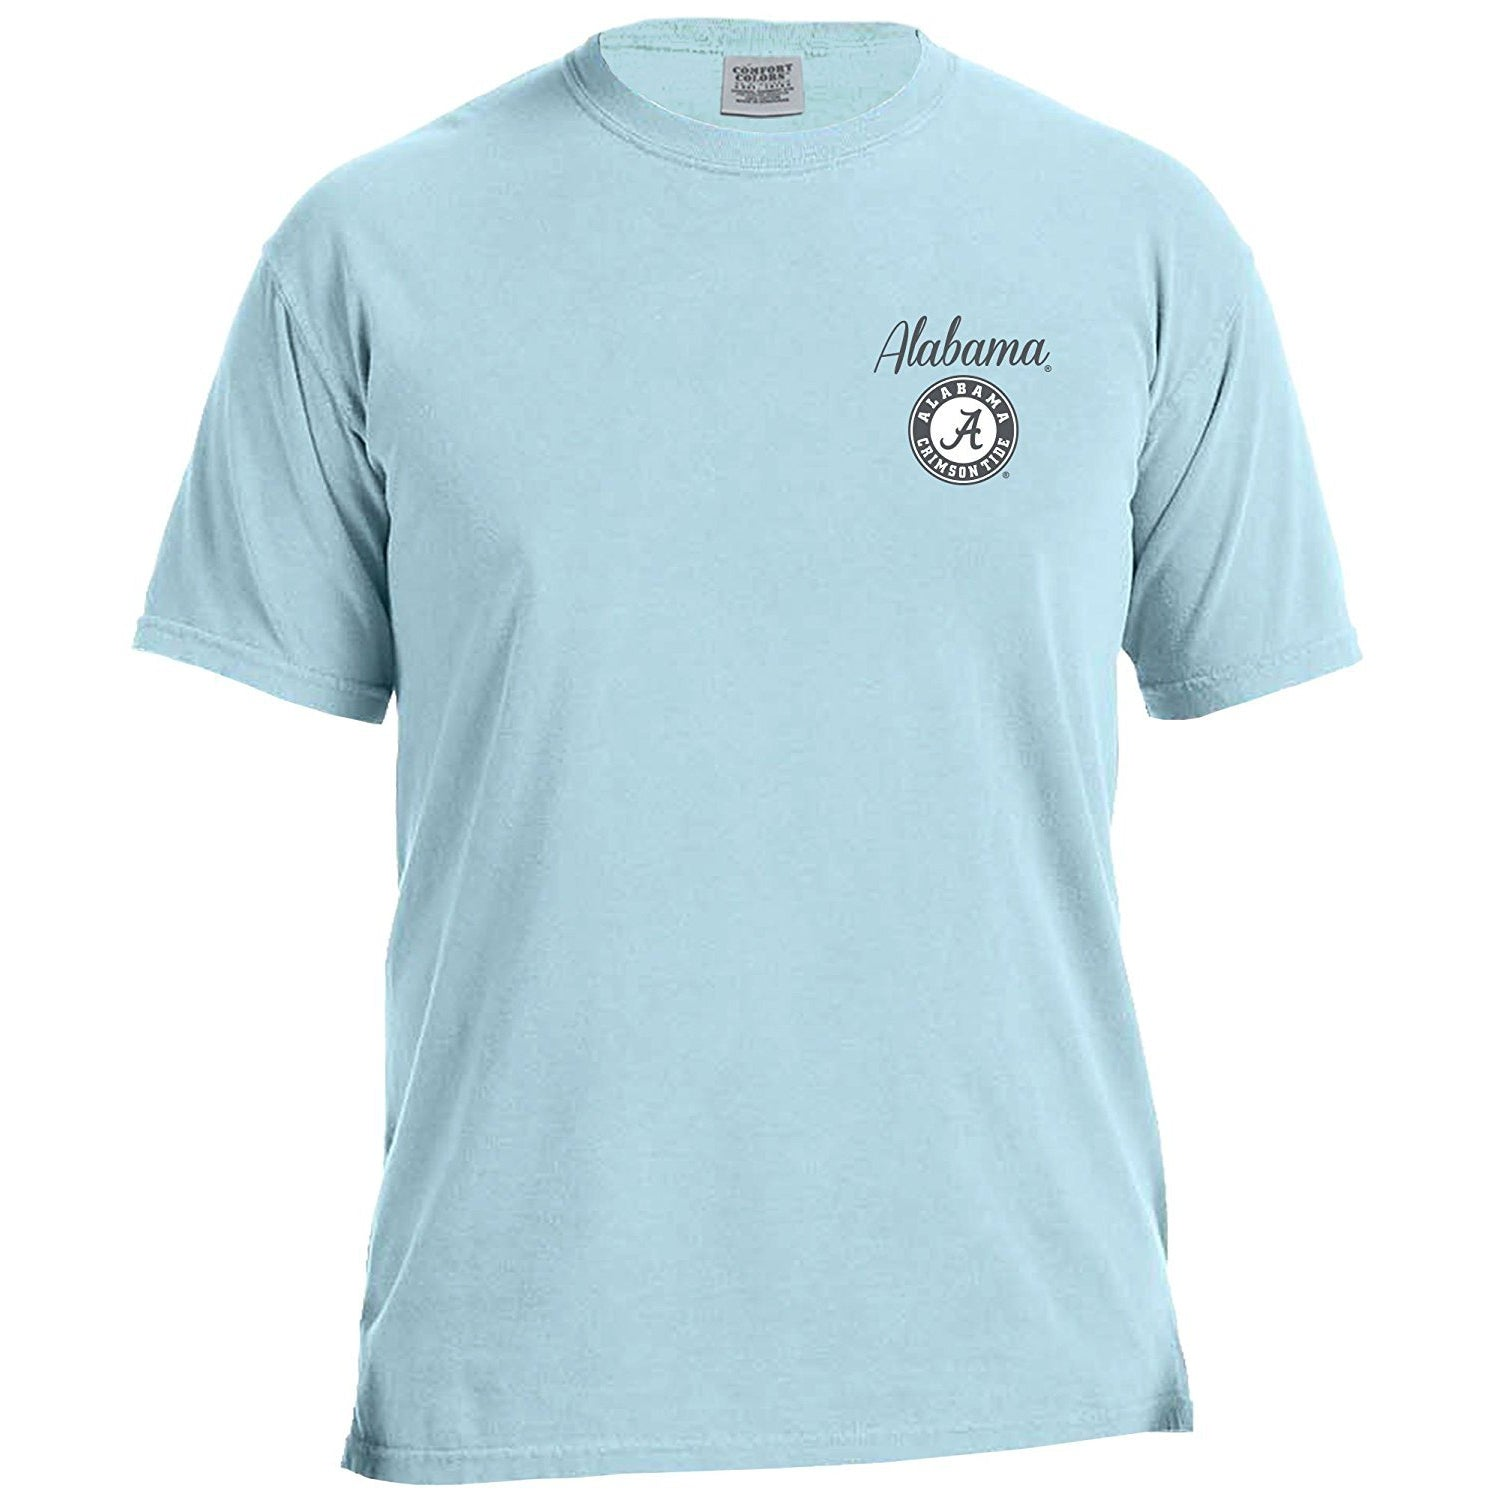 Love the South T-Shirt - Alabama - Southern Ivy Boutique